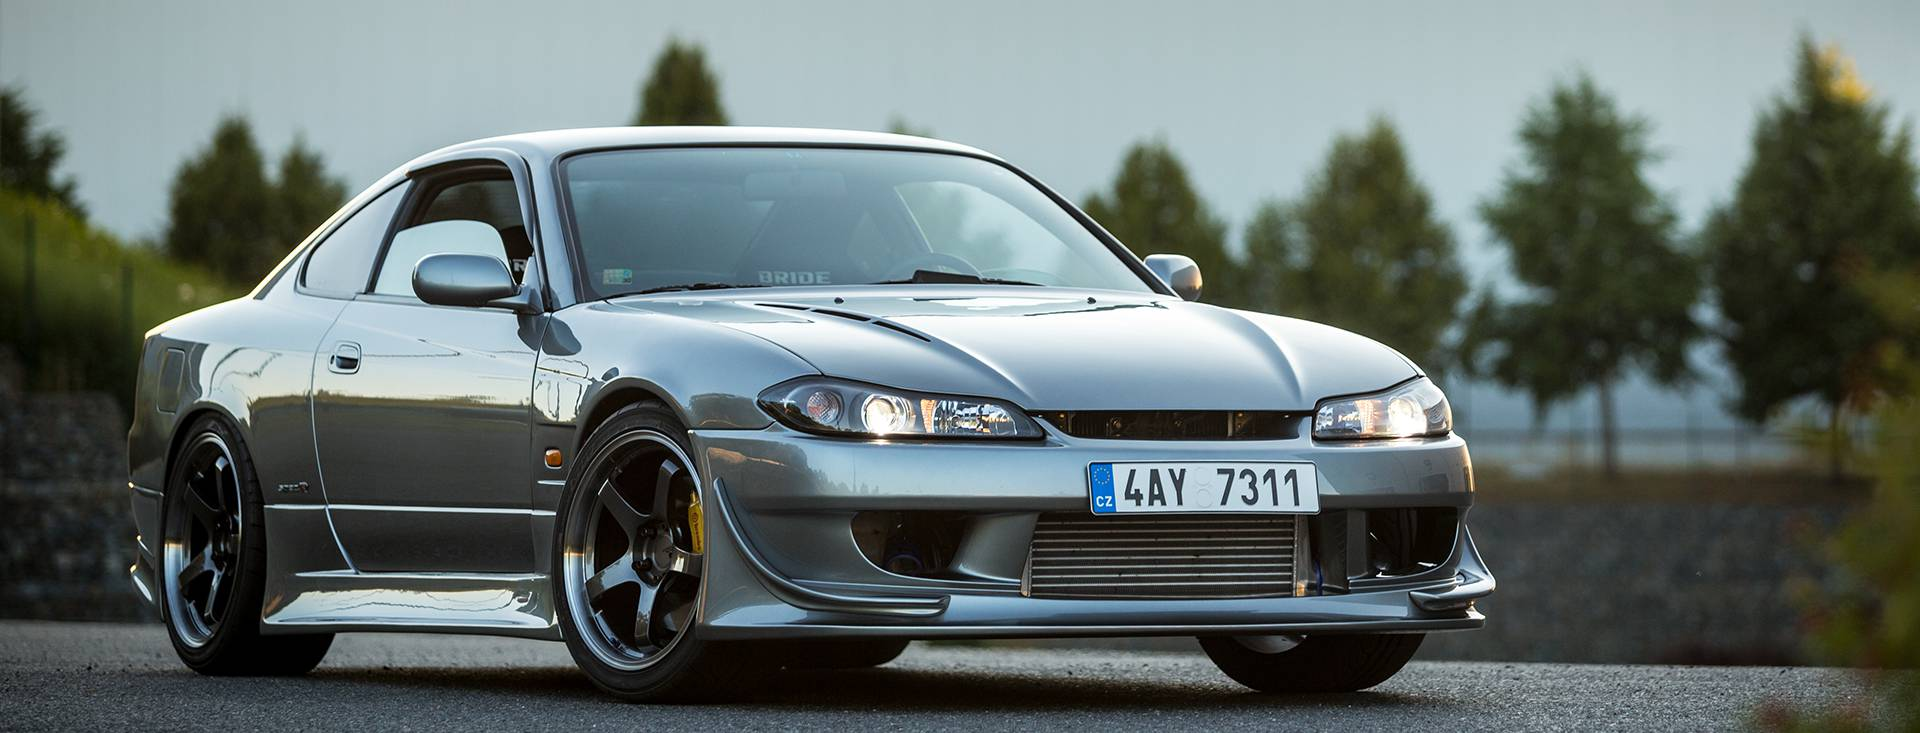 lhd nissan silvia s15 kageki racing expensive toys for big boys. Black Bedroom Furniture Sets. Home Design Ideas